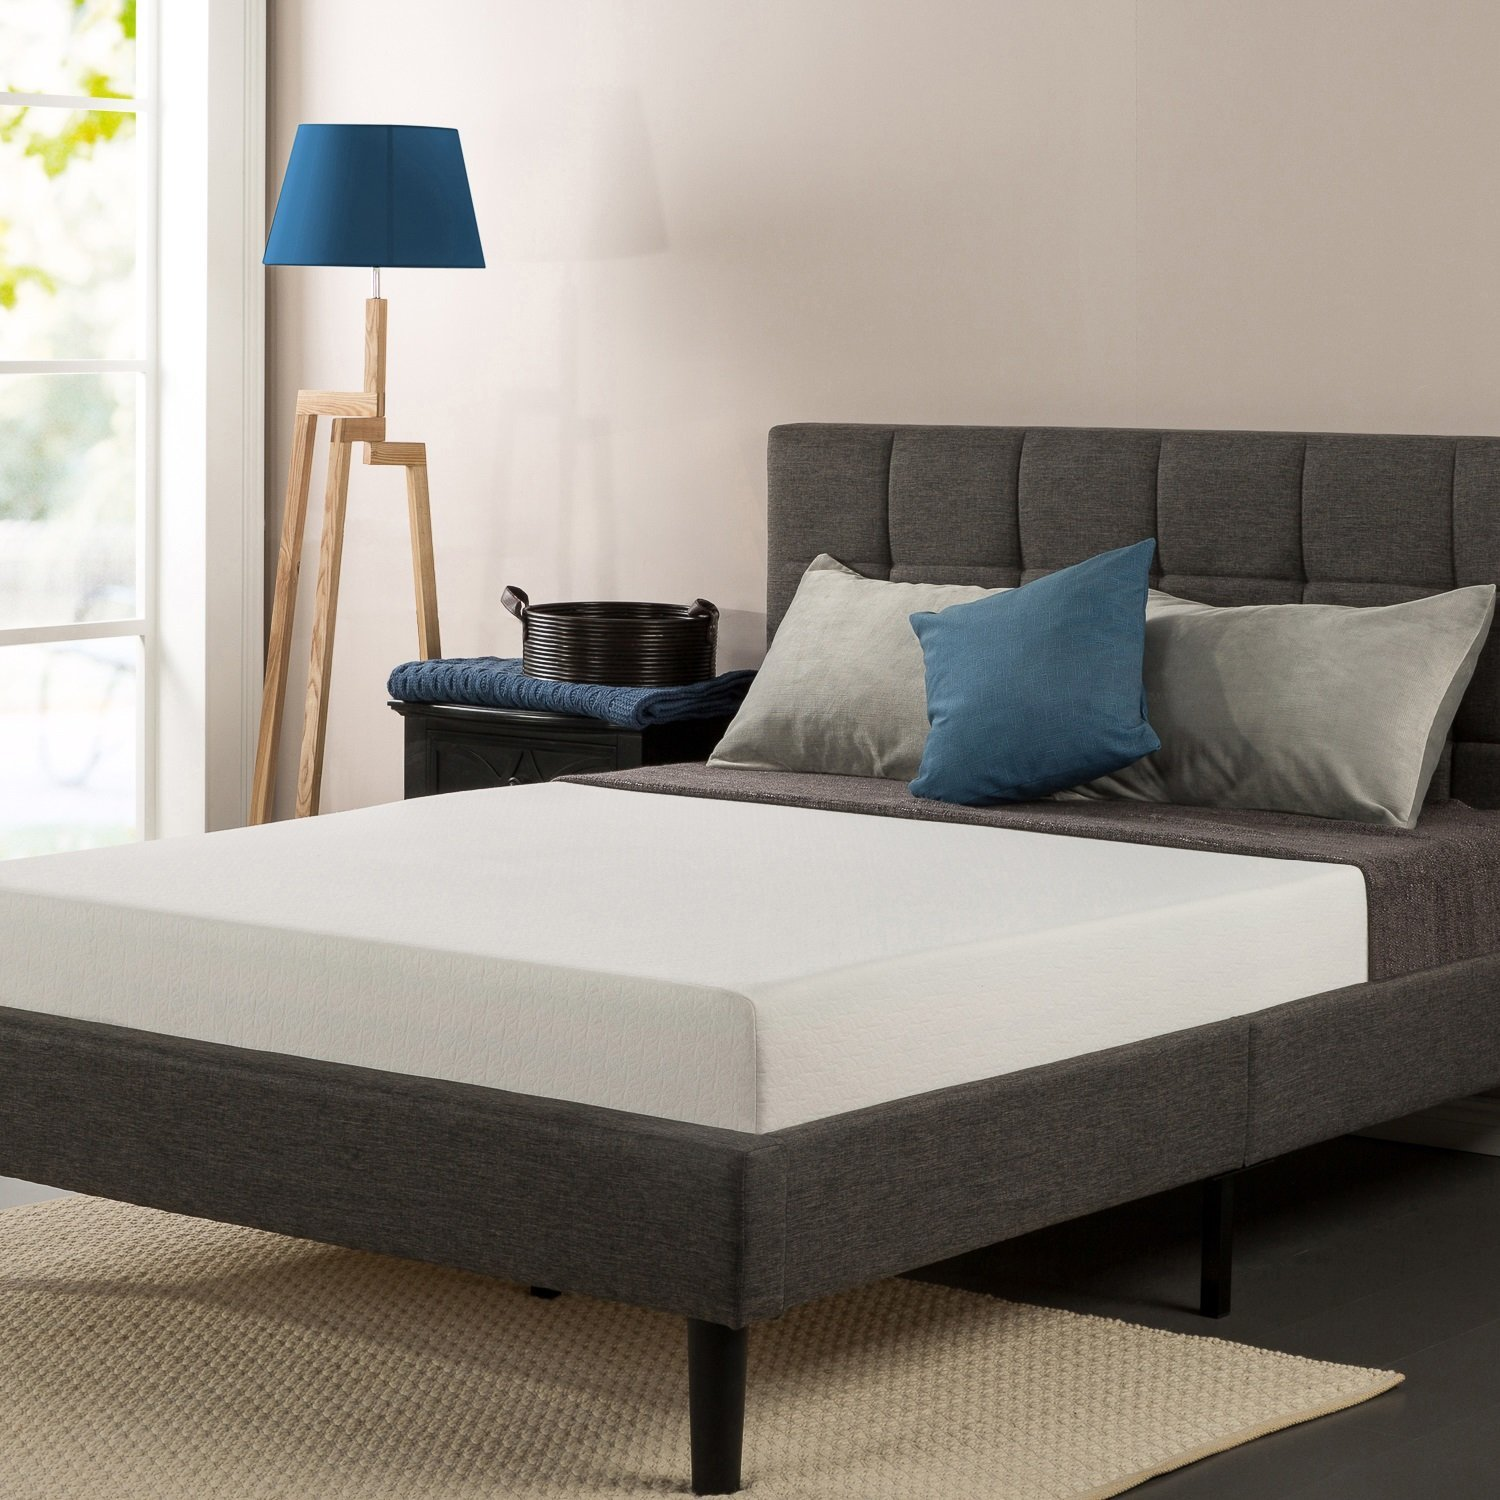 Amazon com  Zinus Ultima Comfort Memory Foam 8 Inch Mattress  Full  Kitchen    Dining. Amazon com  Zinus Ultima Comfort Memory Foam 8 Inch Mattress  Full